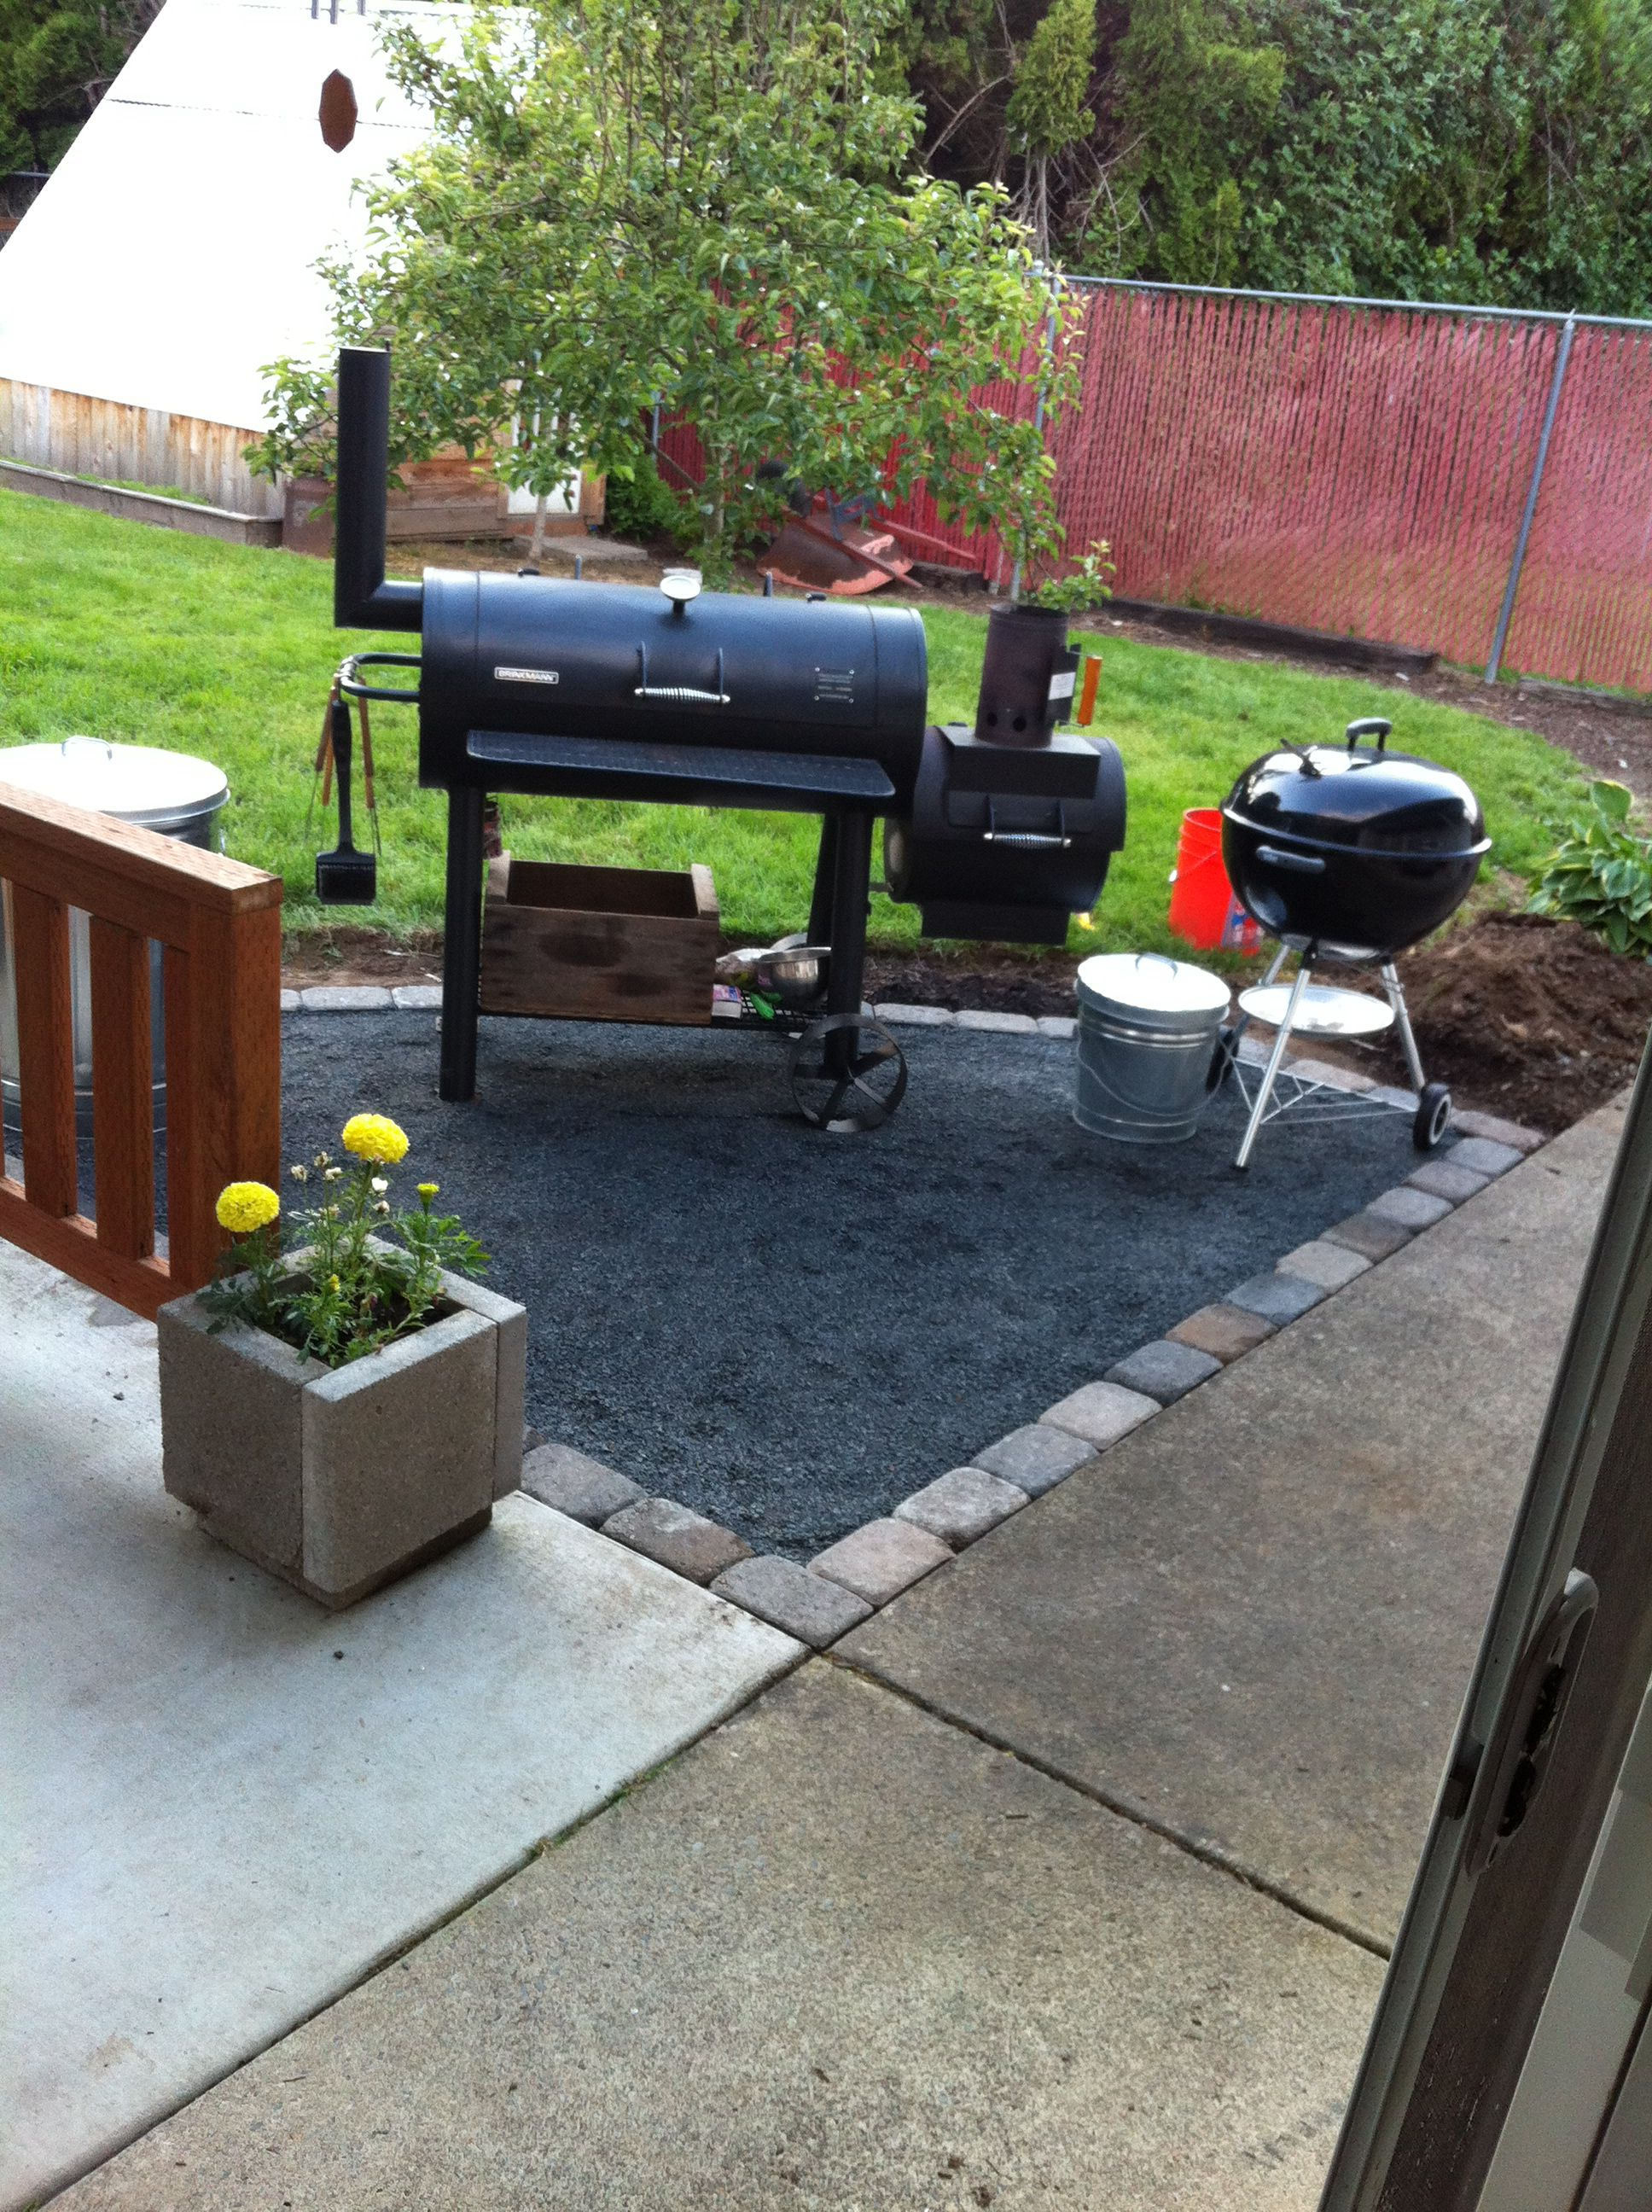 Bbq Area With Pavers And Gravel Super Easy Afternoon Project Diy Backyard Patio Backyard Grilling Area Backyard Grill Ideas